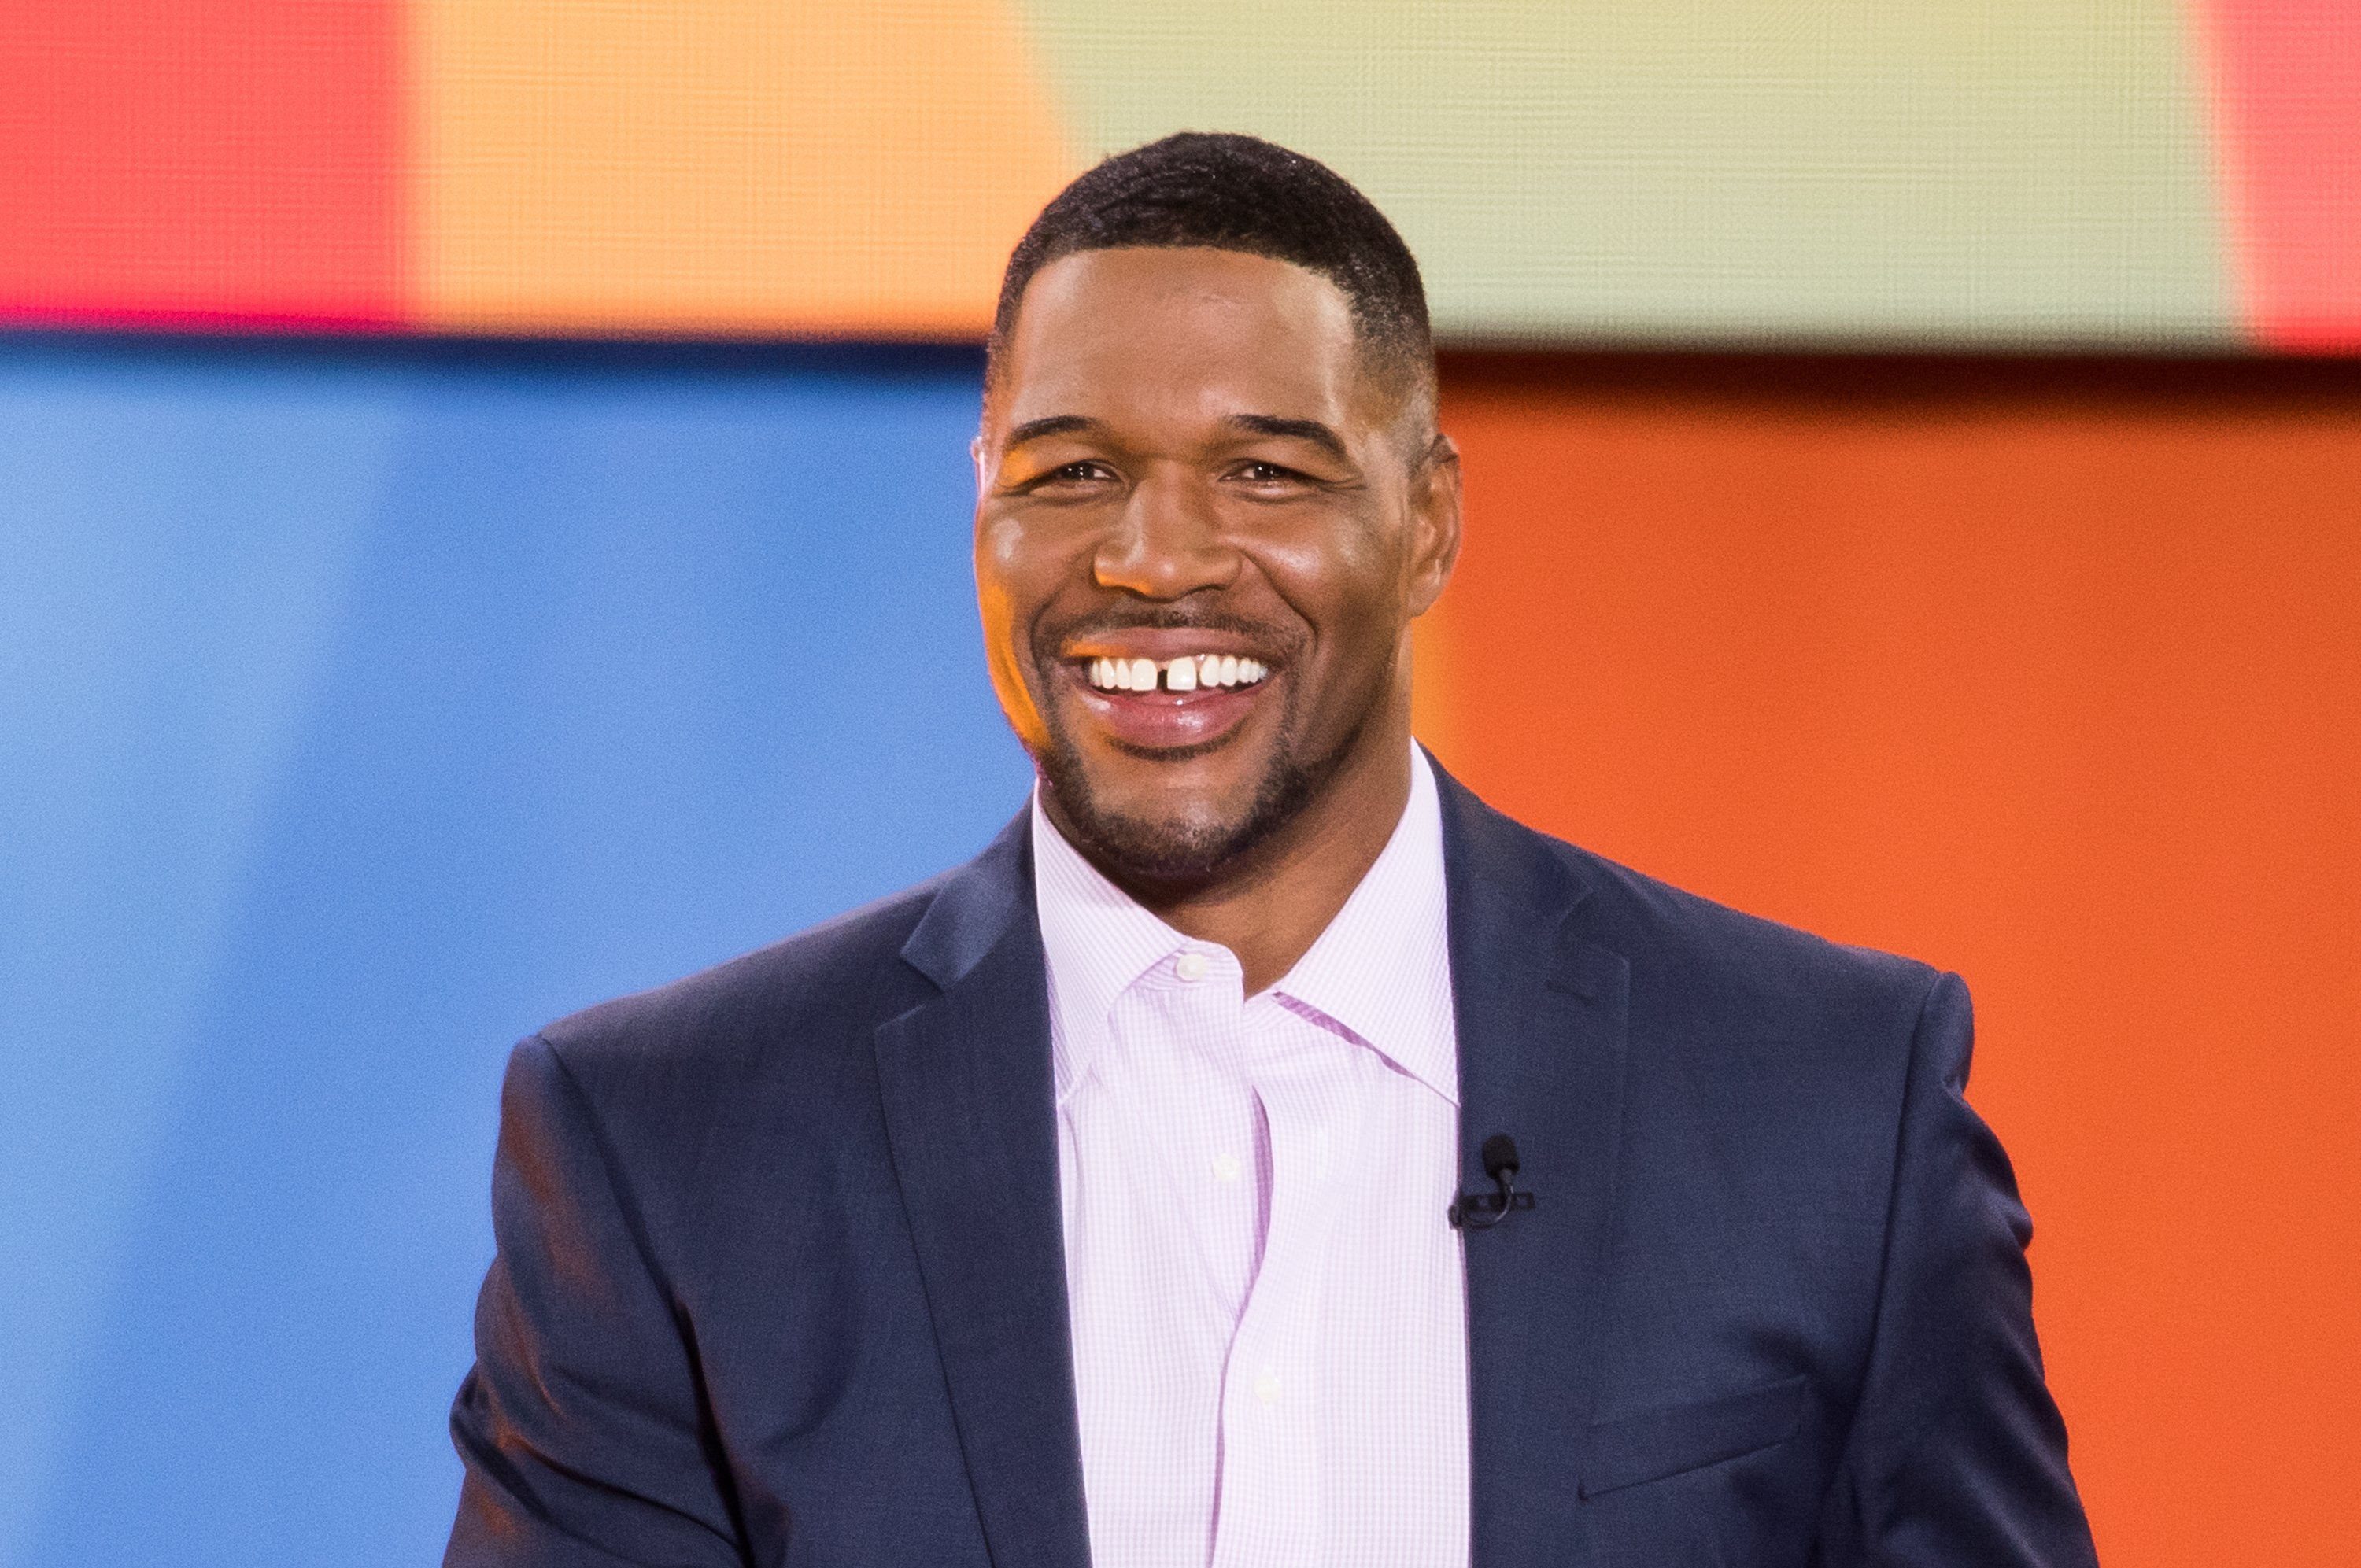 """Michael Strahan on the set of """"Good Morning America"""" at Rumsey Playfield, Central Park on July 6, 2018. 